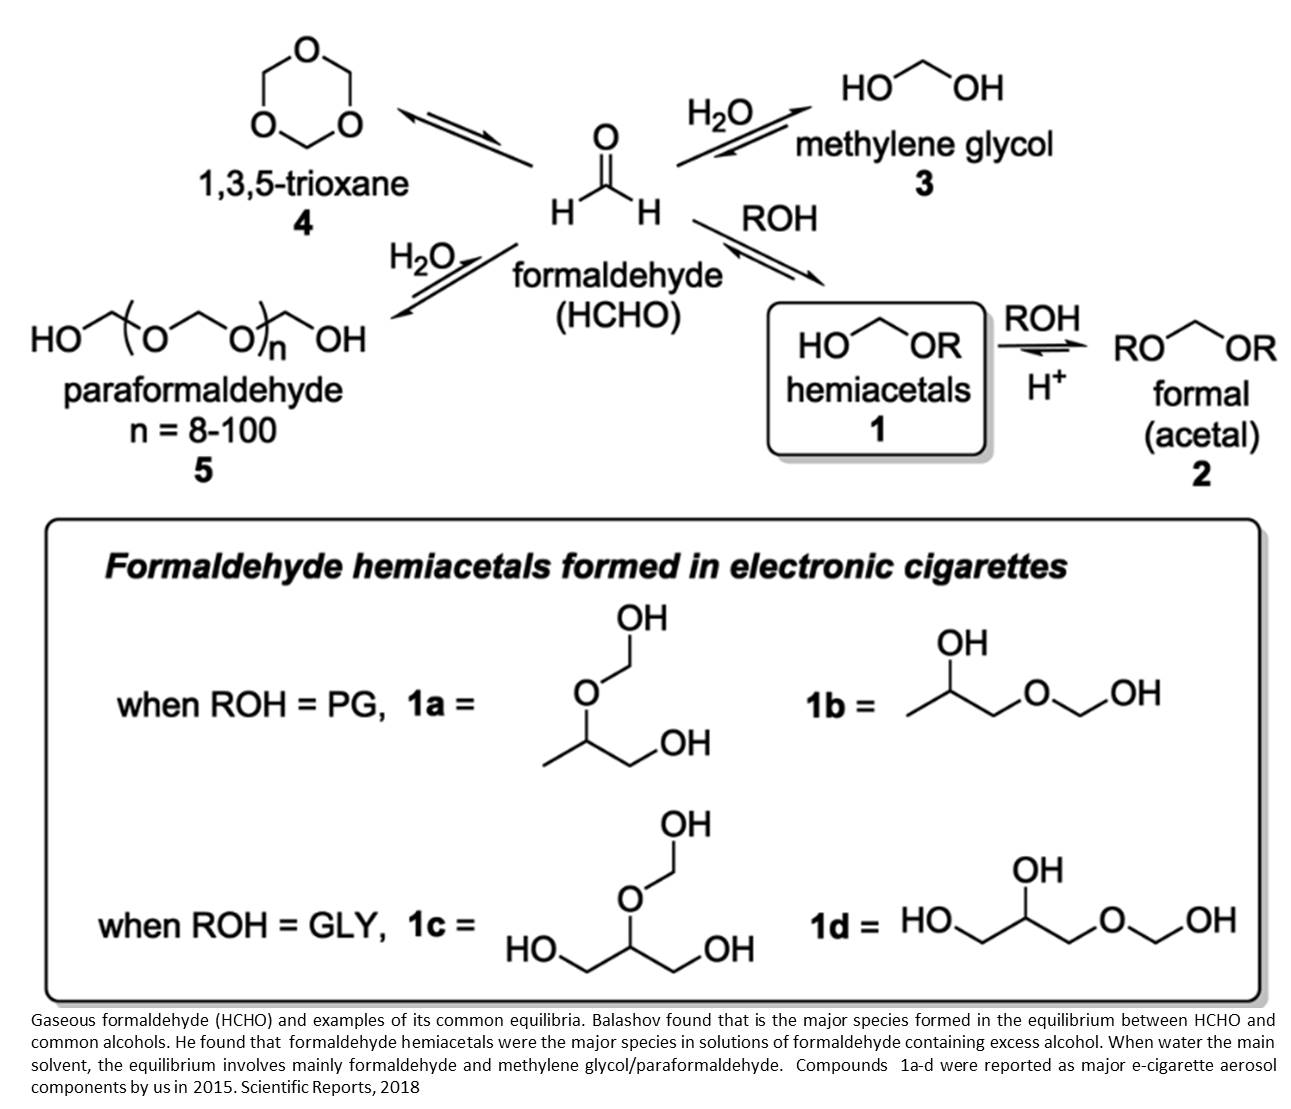 Higher formaldehyde risk in e-cigarettes than previously thought